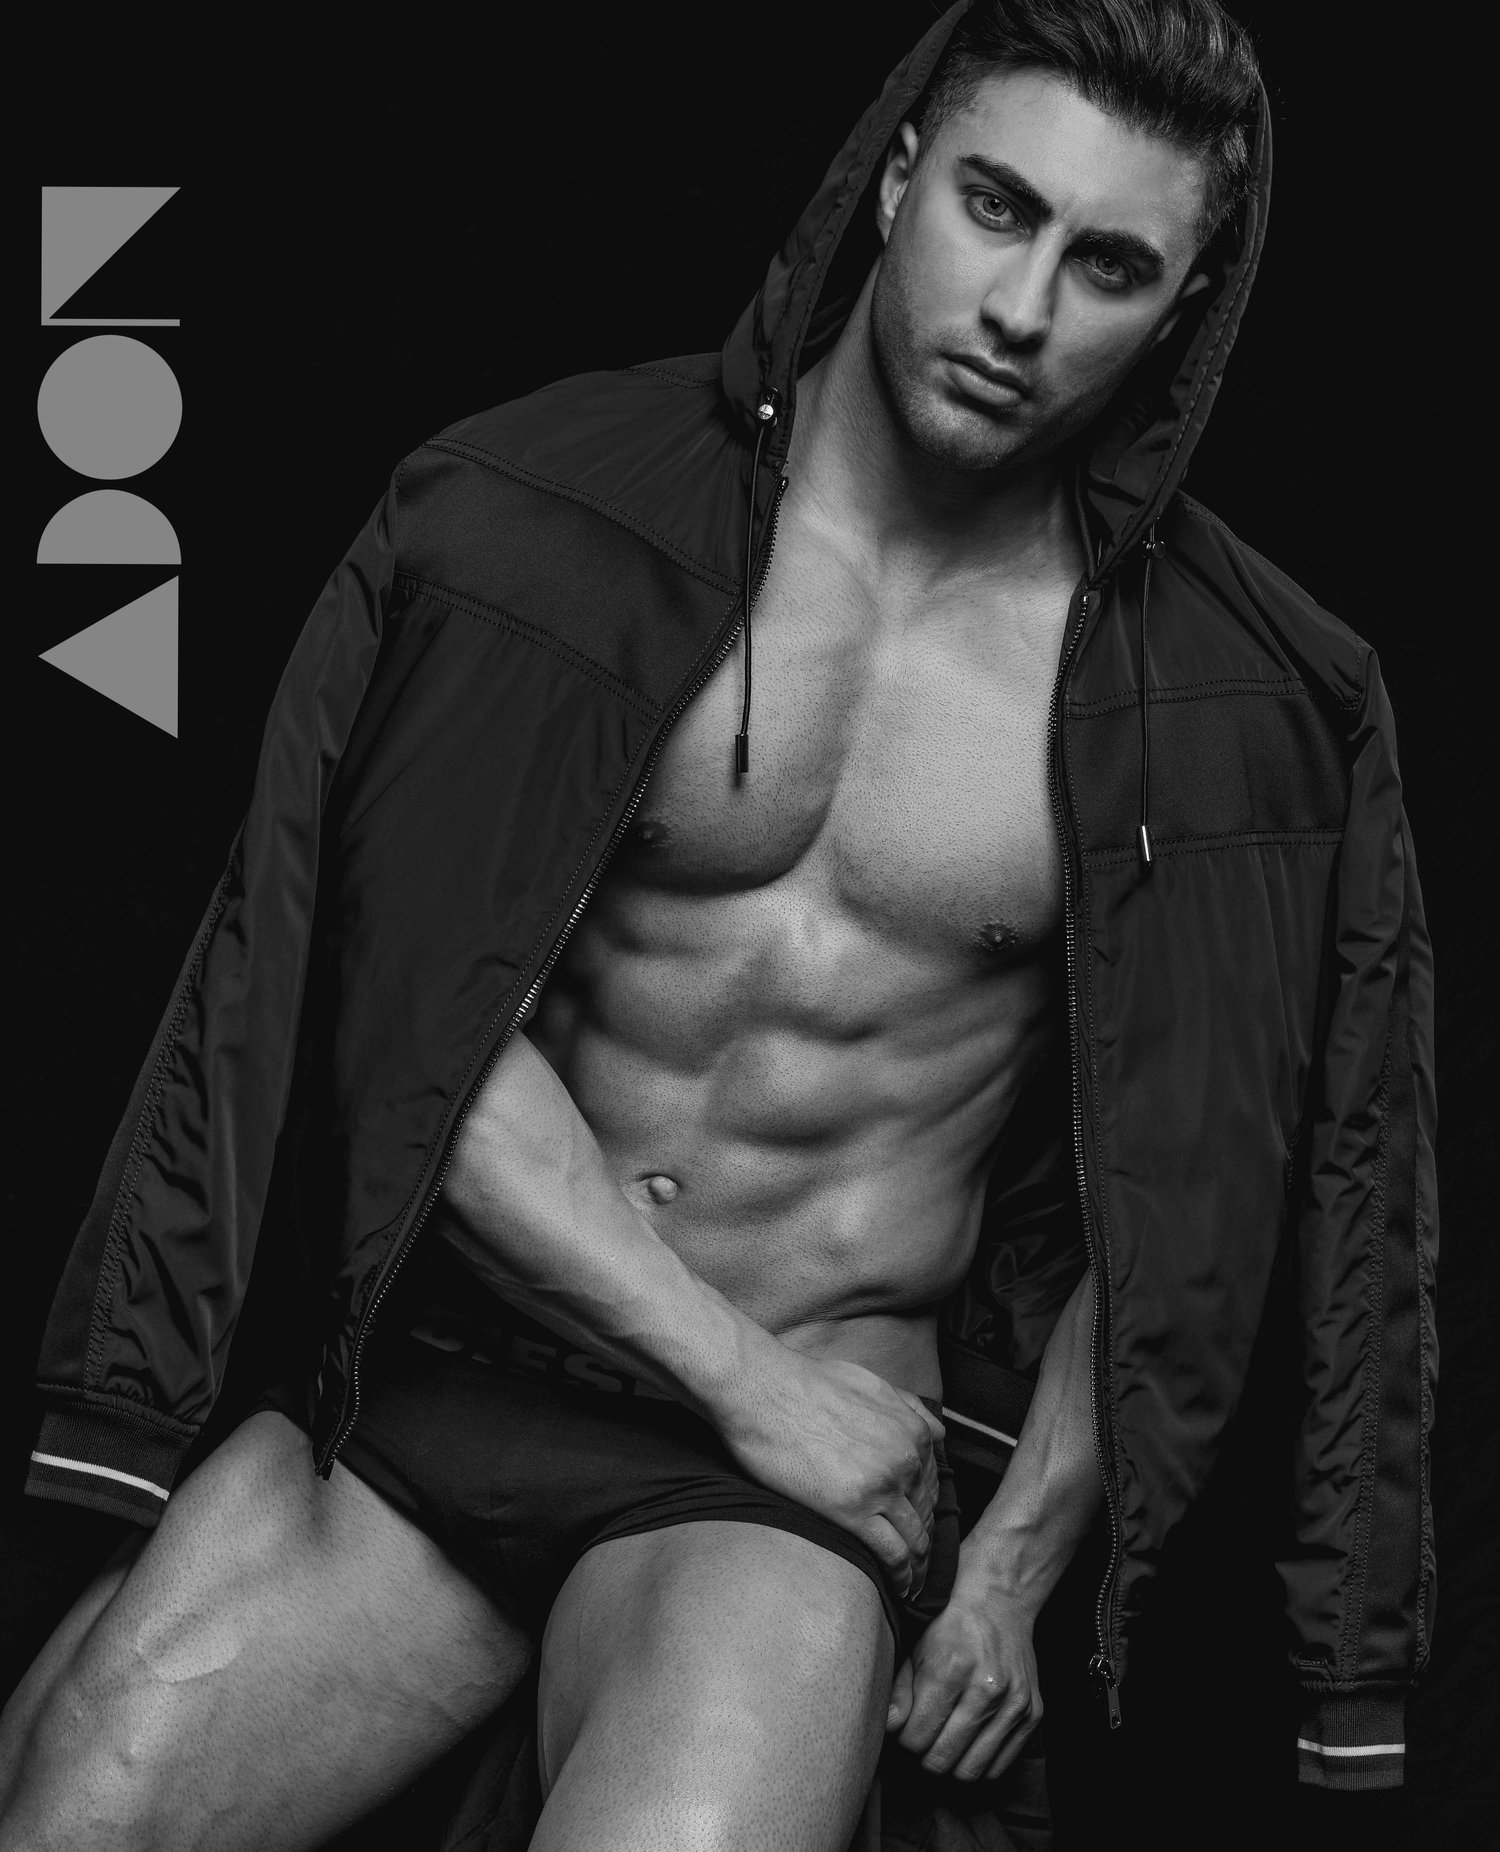 e915eee3437 Adon Exclusive: Model Moe Kushnow By Paul Jamnicky — Adon | Men's ...